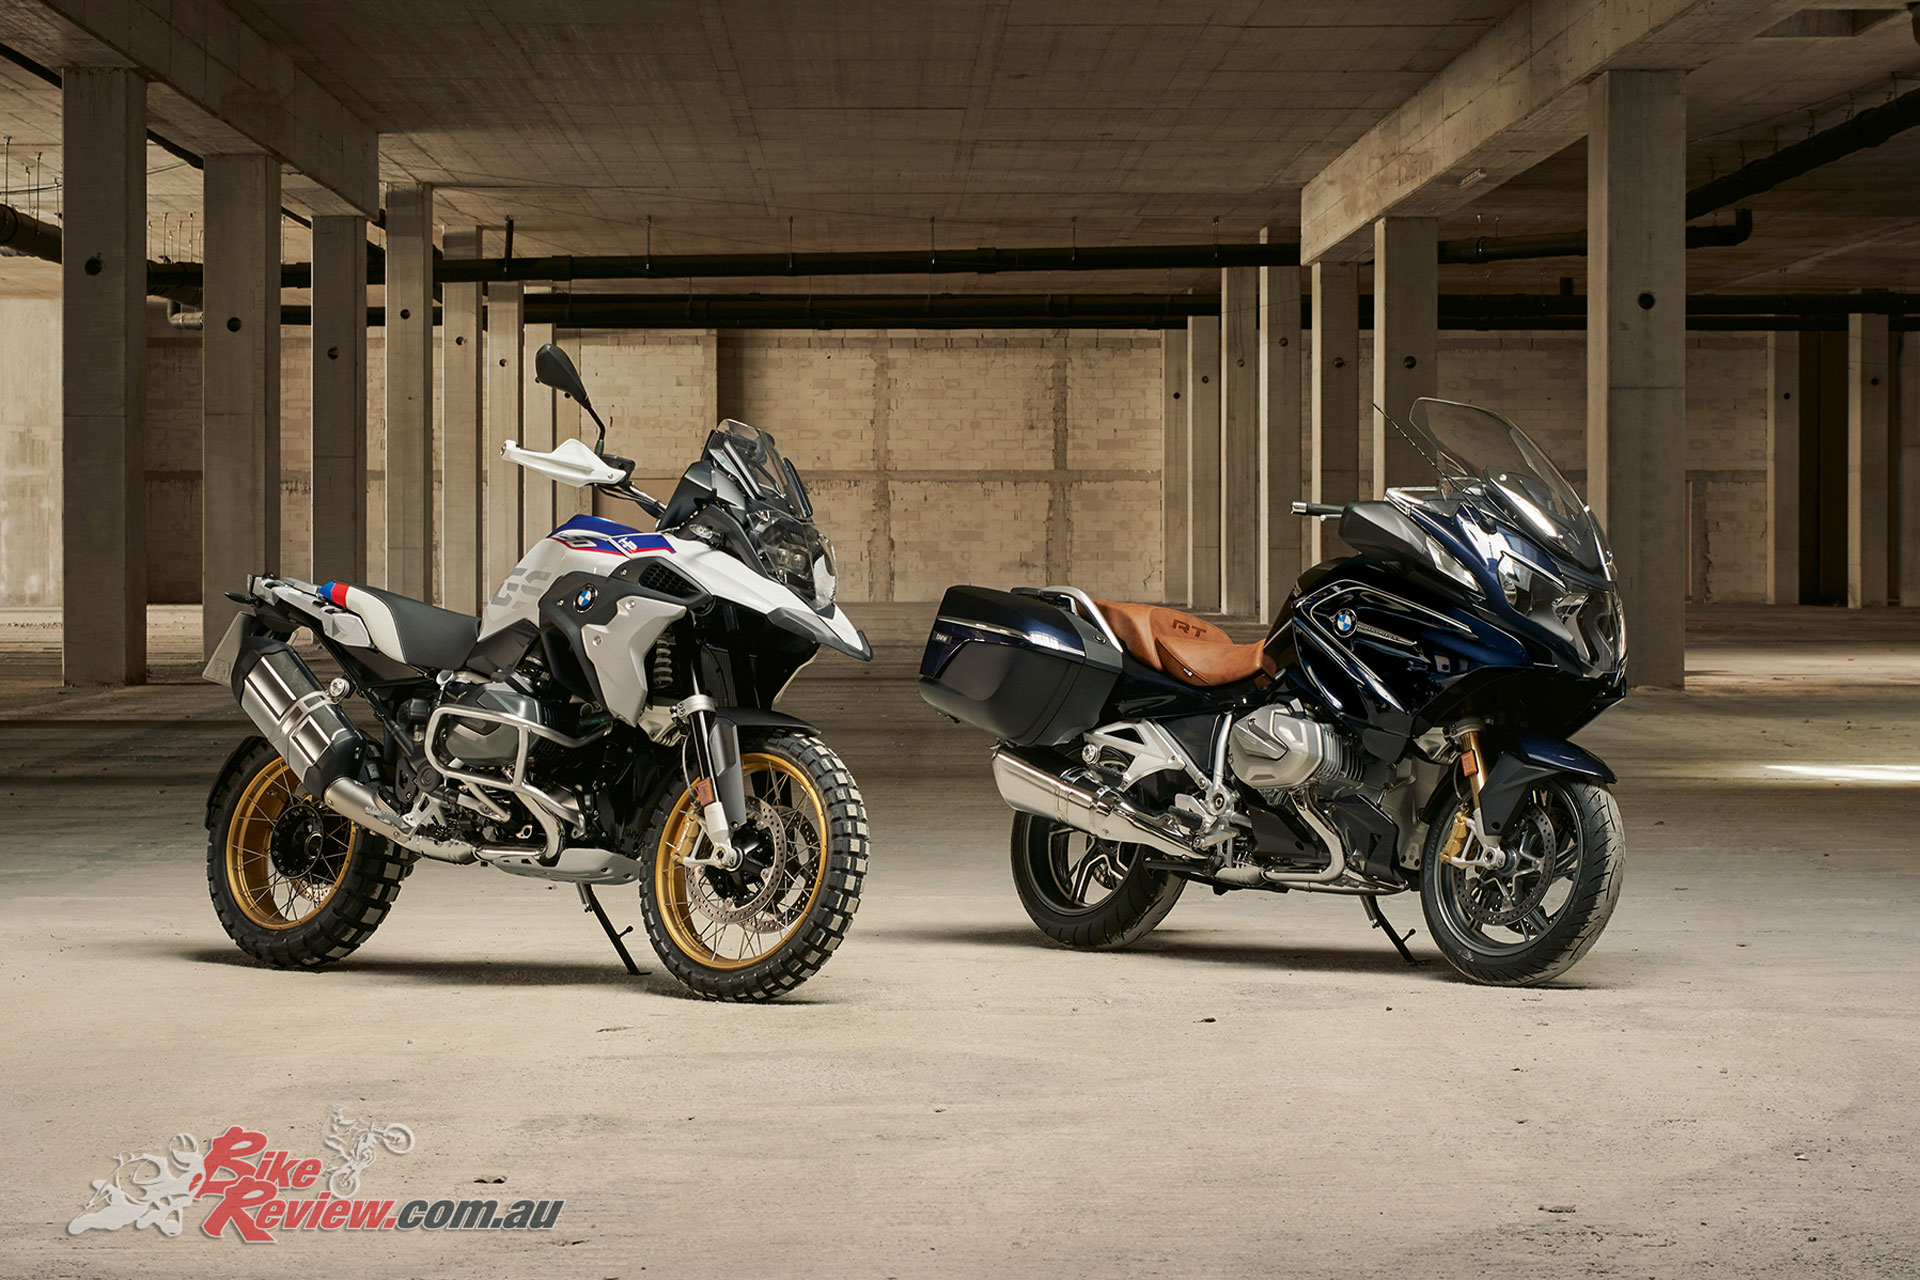 Bmw Announce 2019 R 1250 Pricing Bike Review